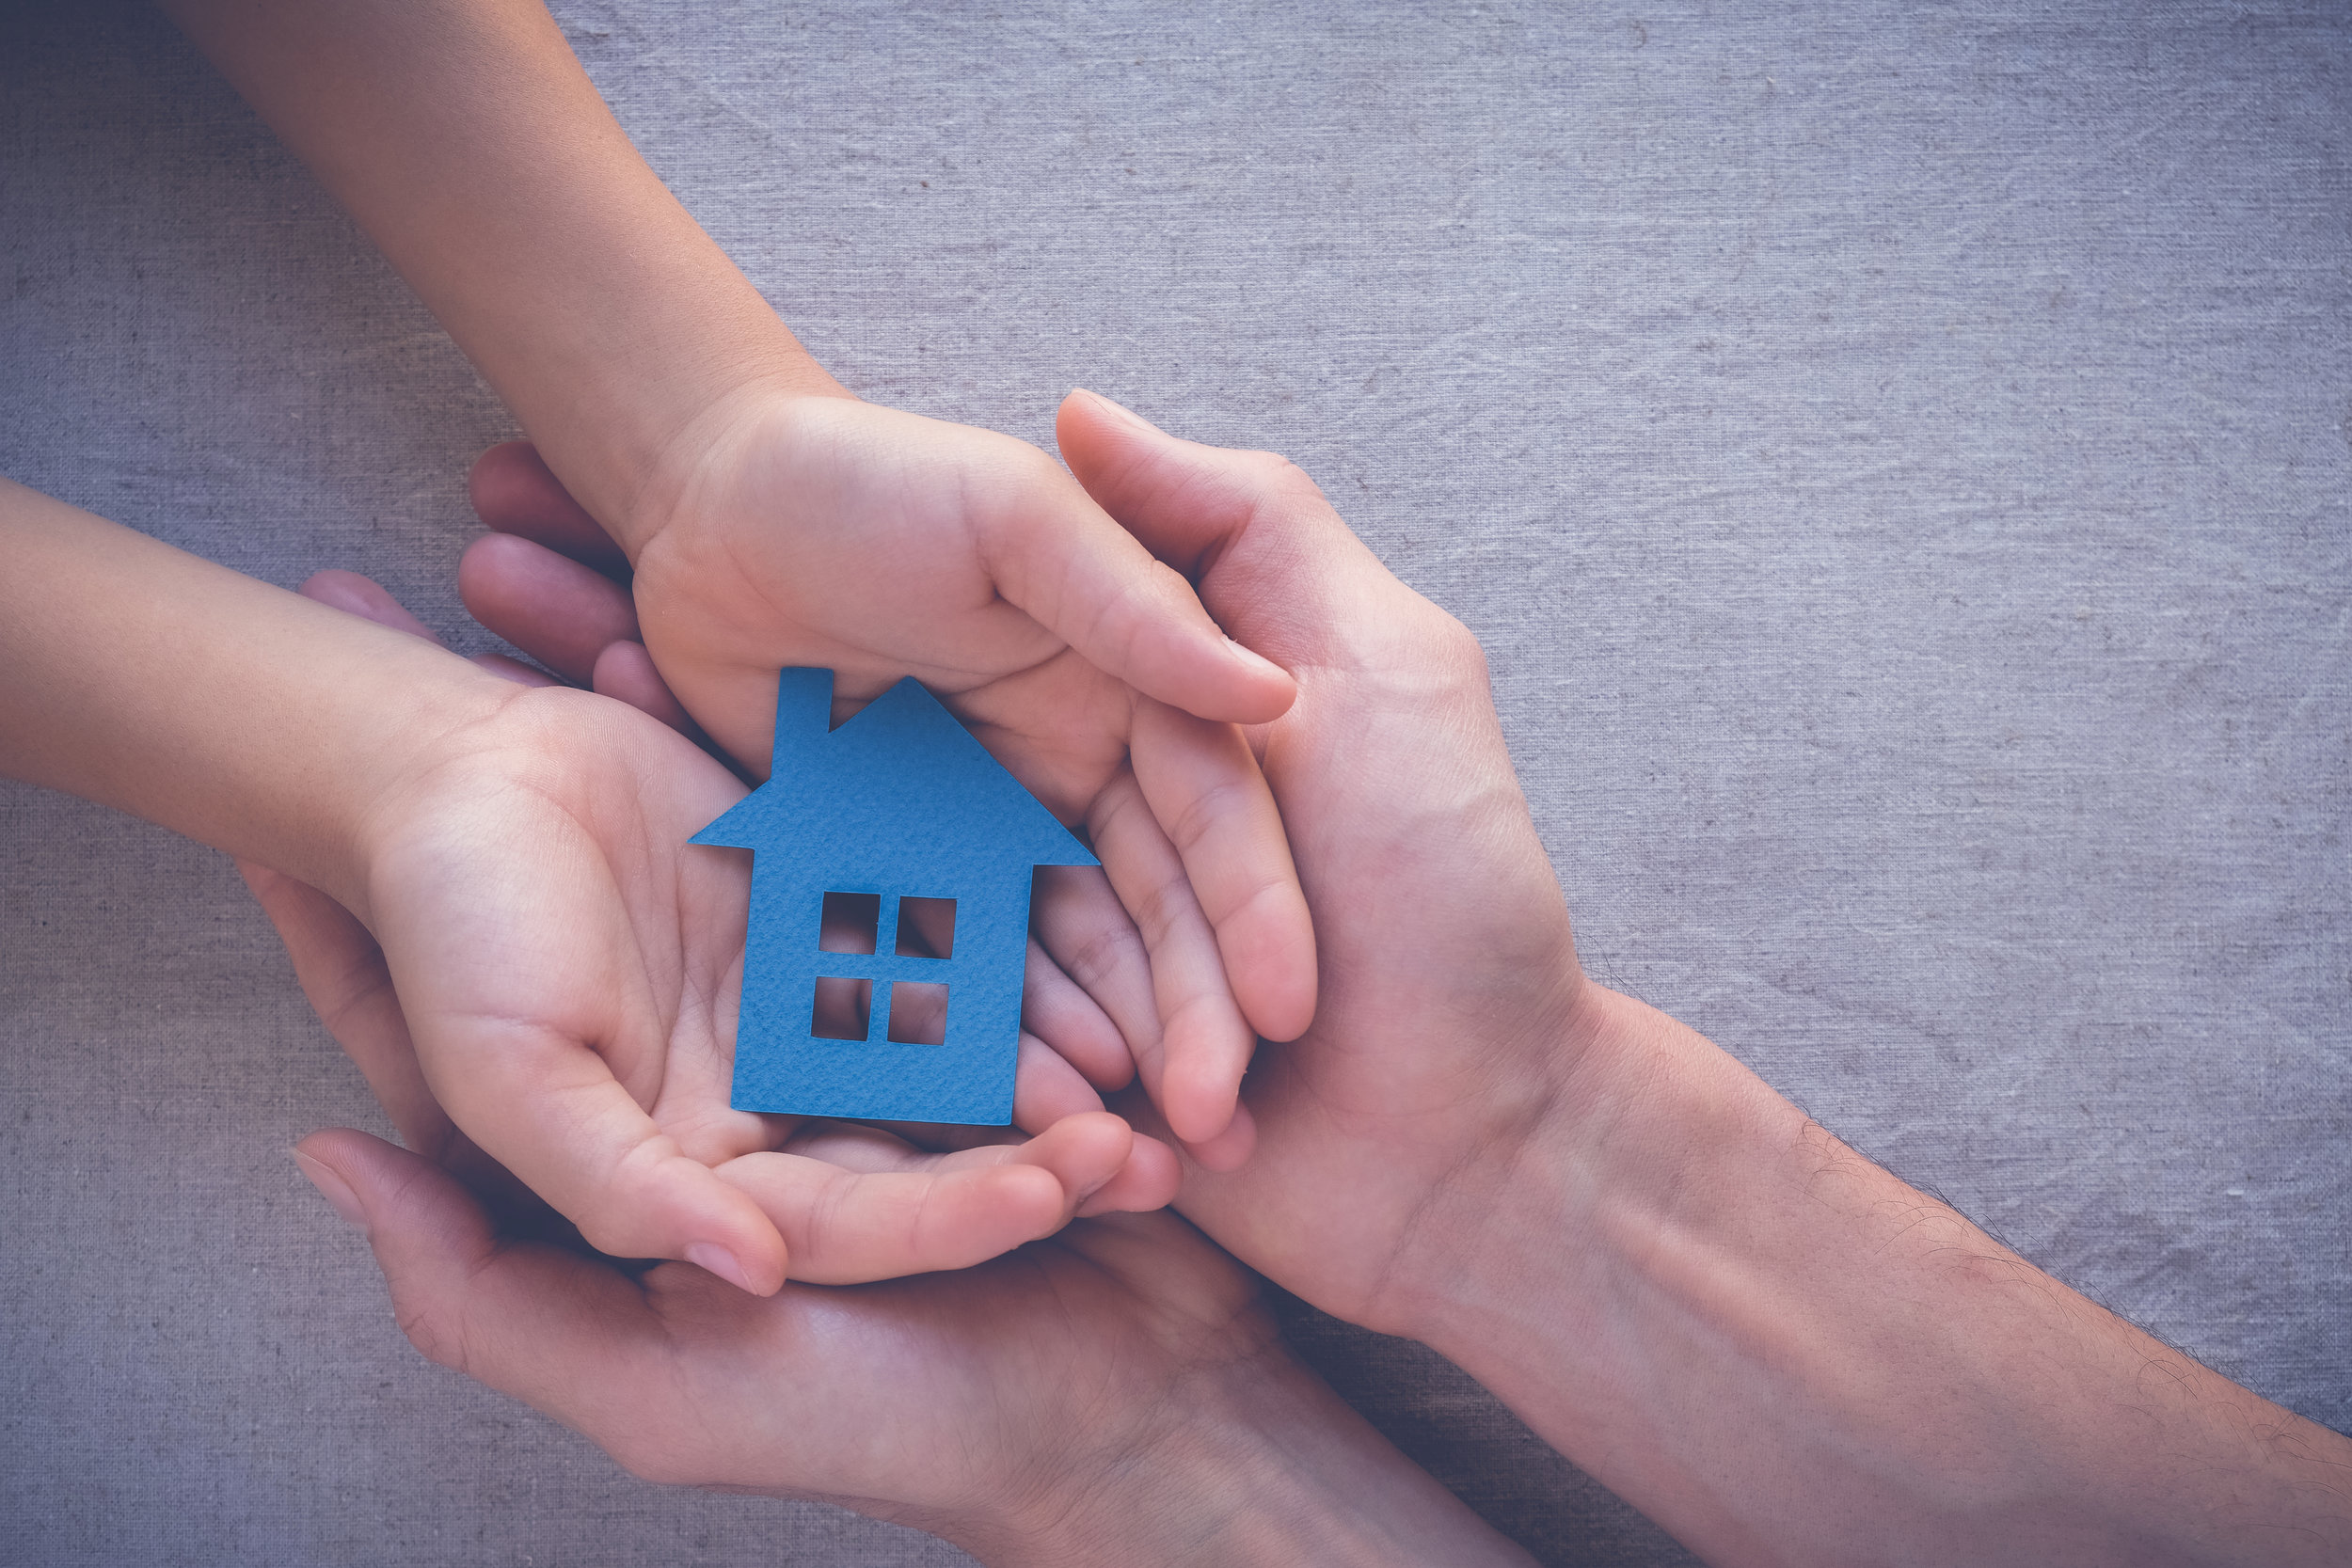 Hands holding a house